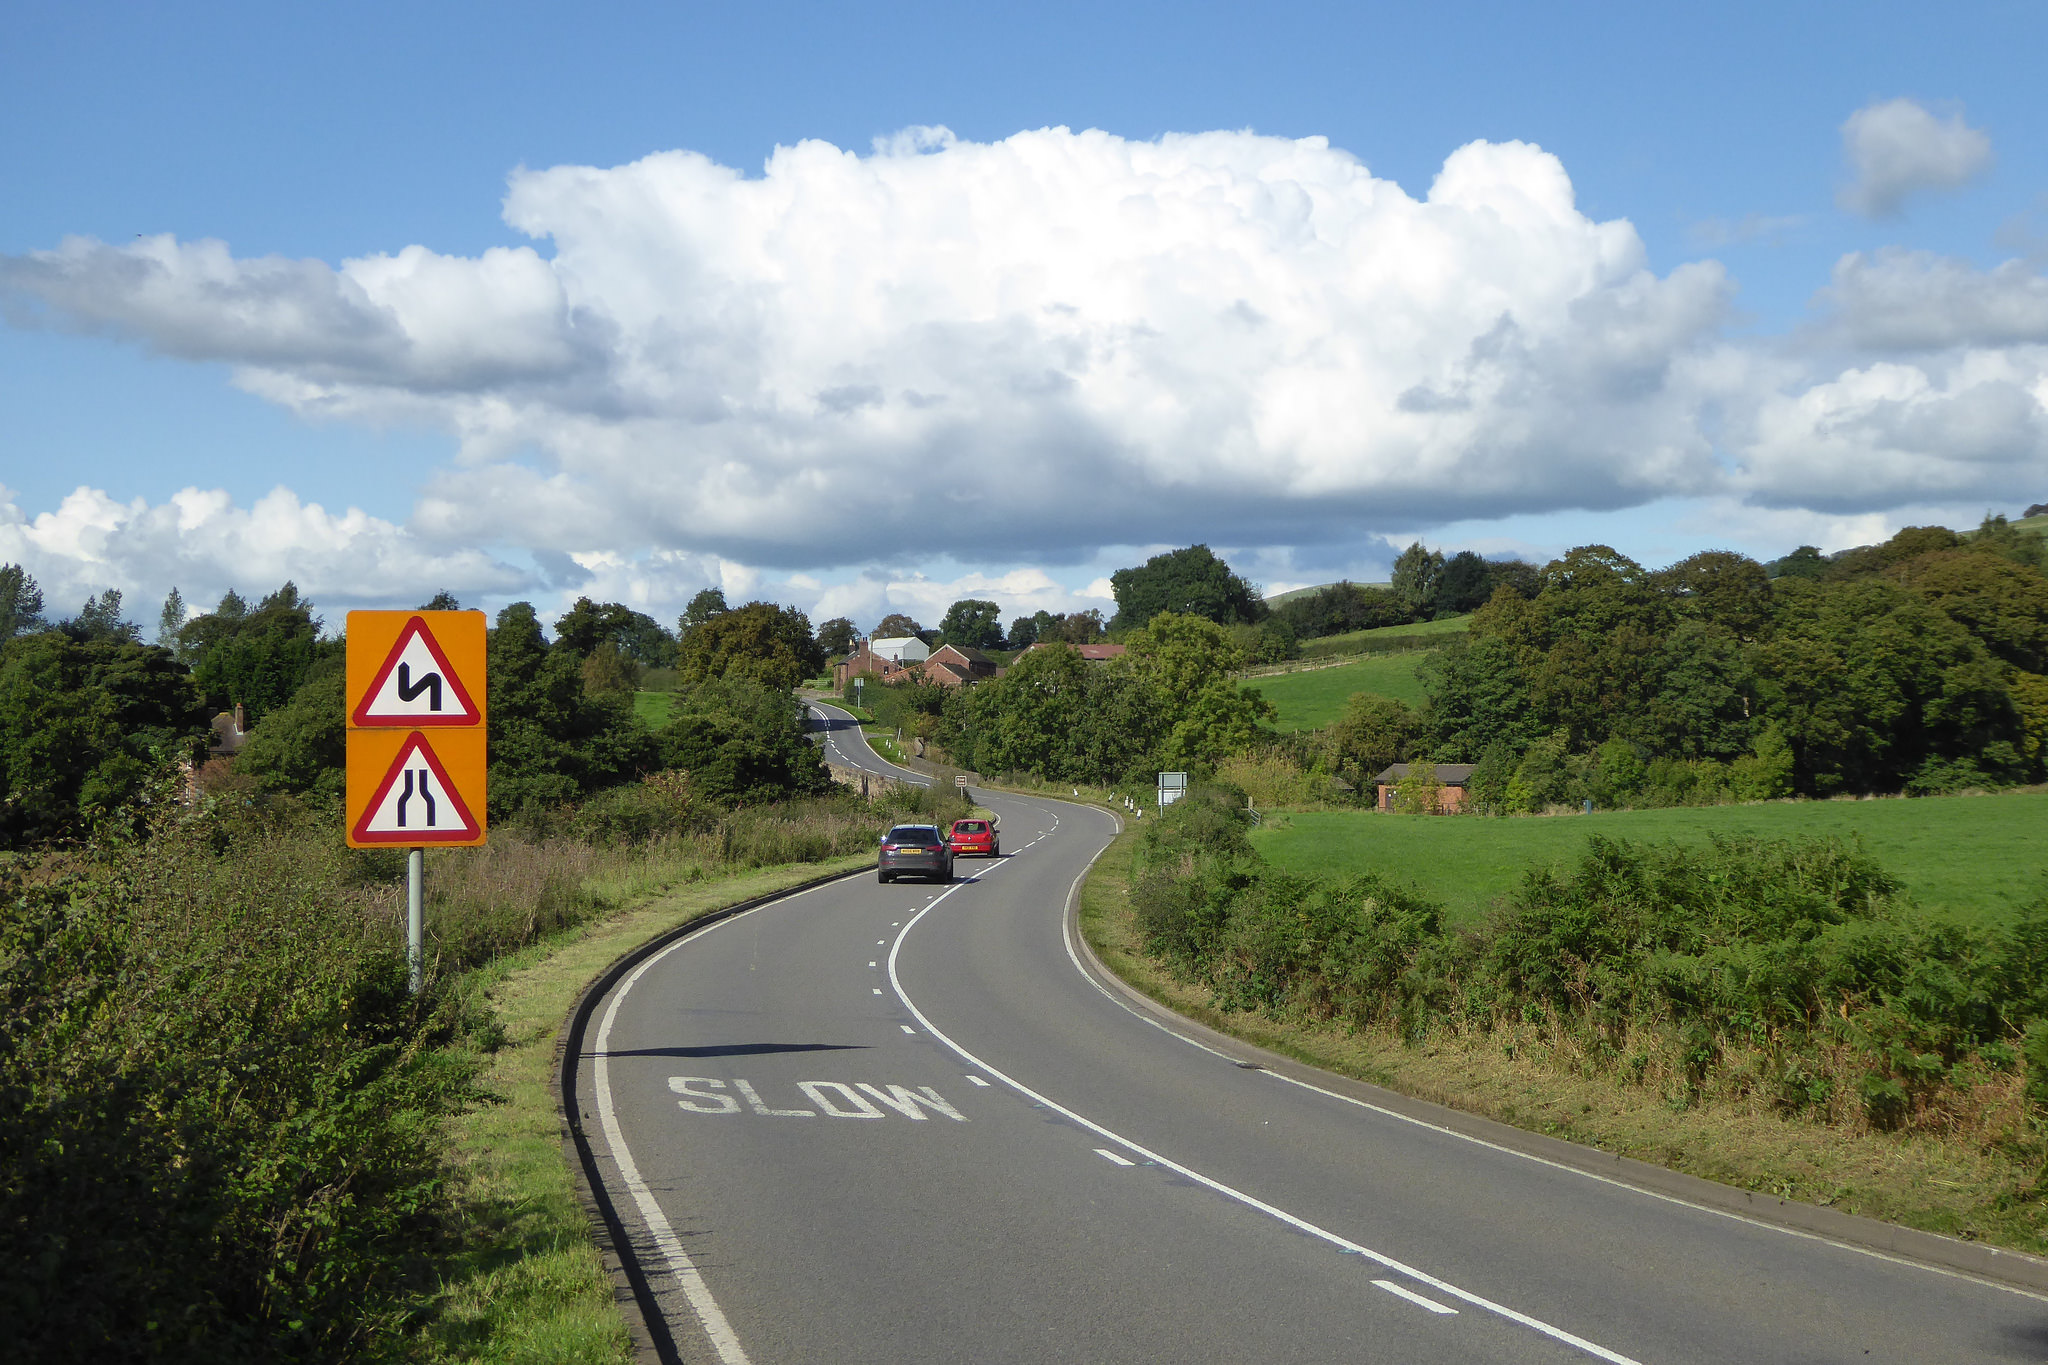 A523 road near the village of Rushton